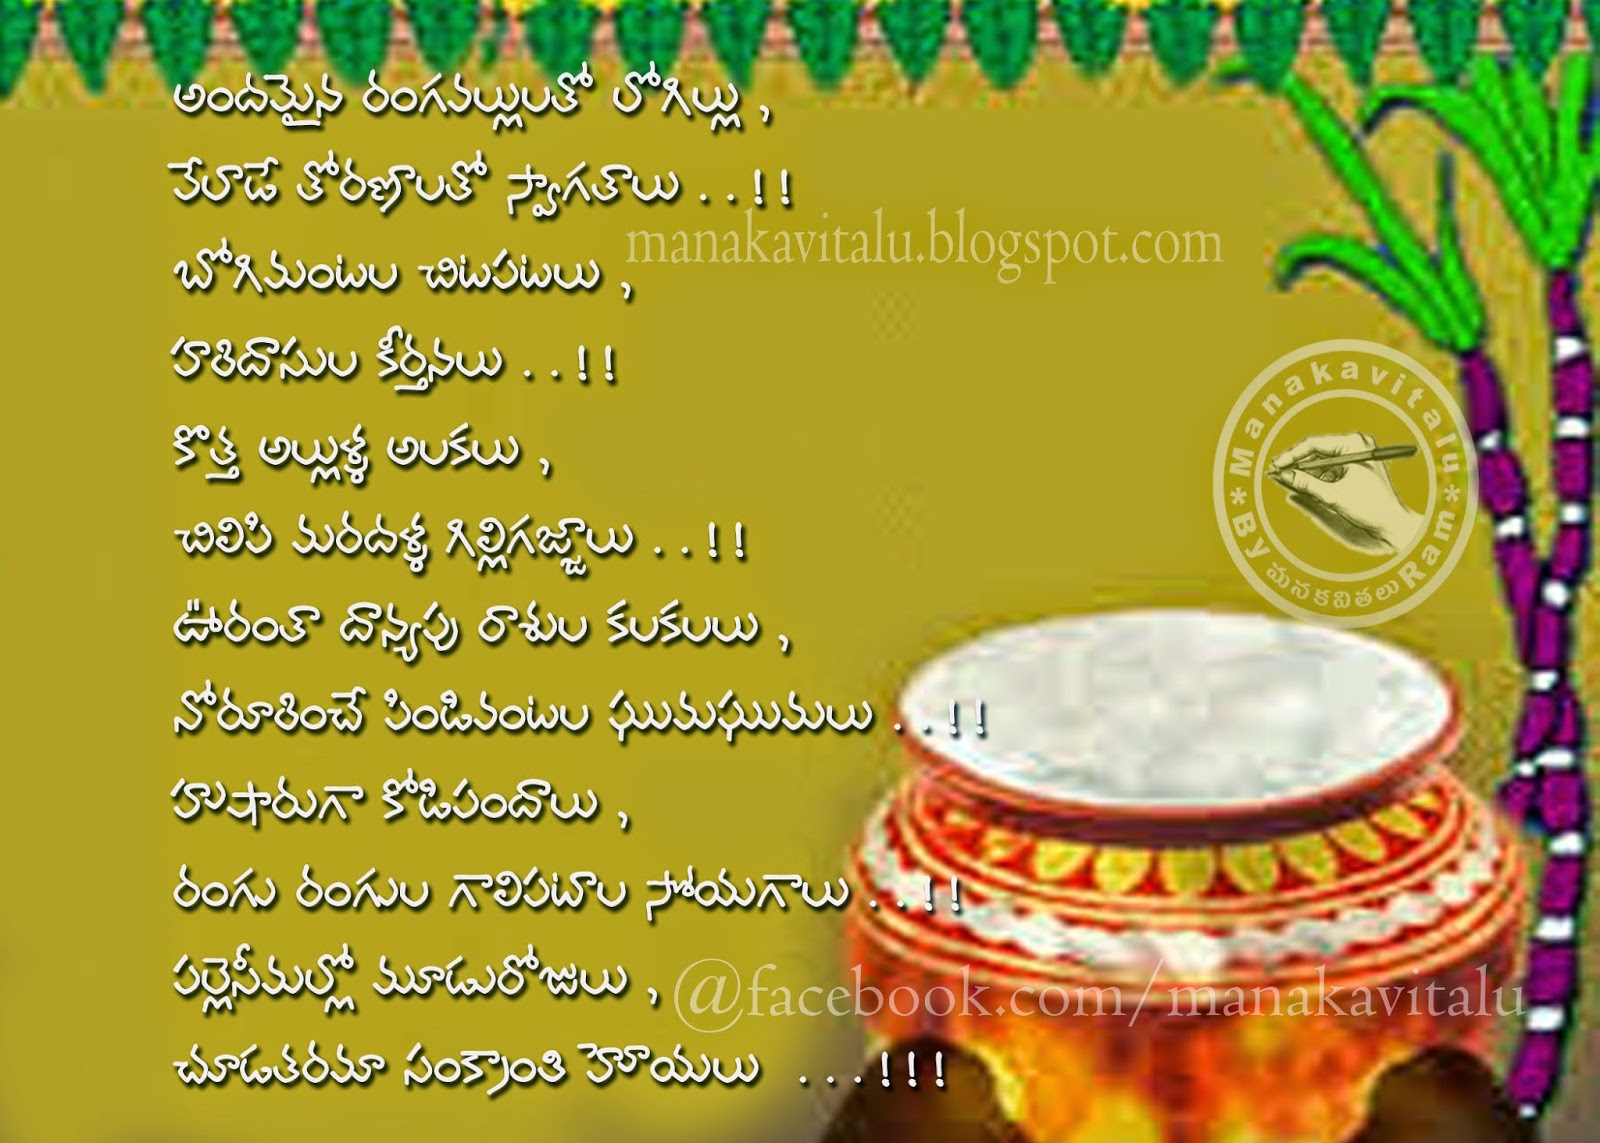 sankranthi telugu kavitalu on images